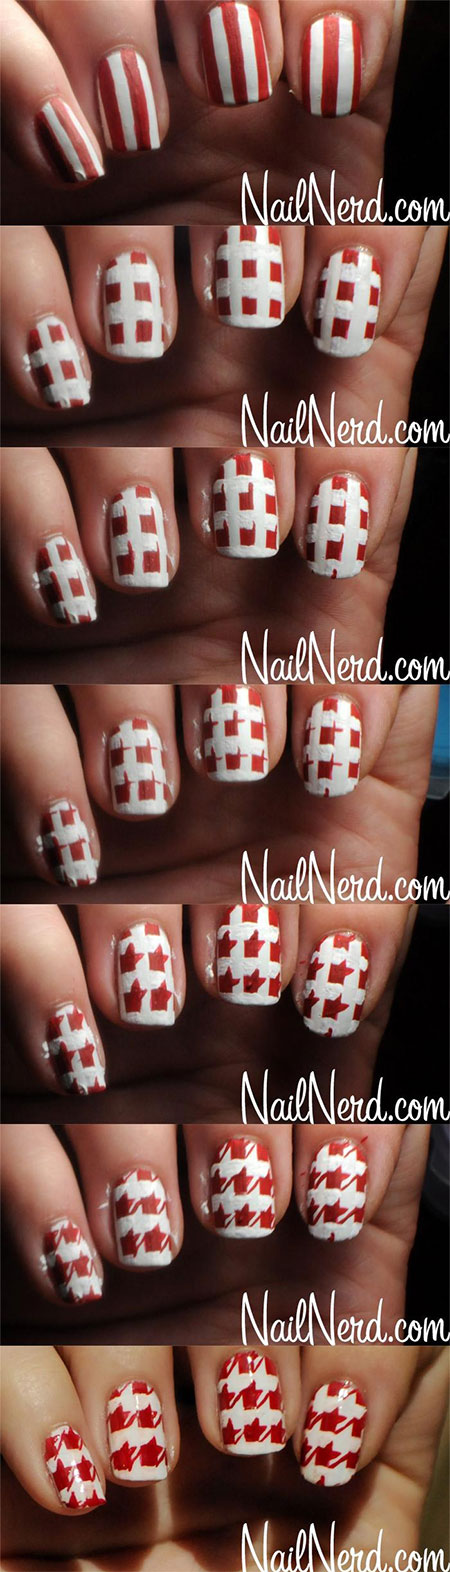 Easy-Houndstooth-Nail-Art-Tutorials-For-Beginners-Learners-2014-9